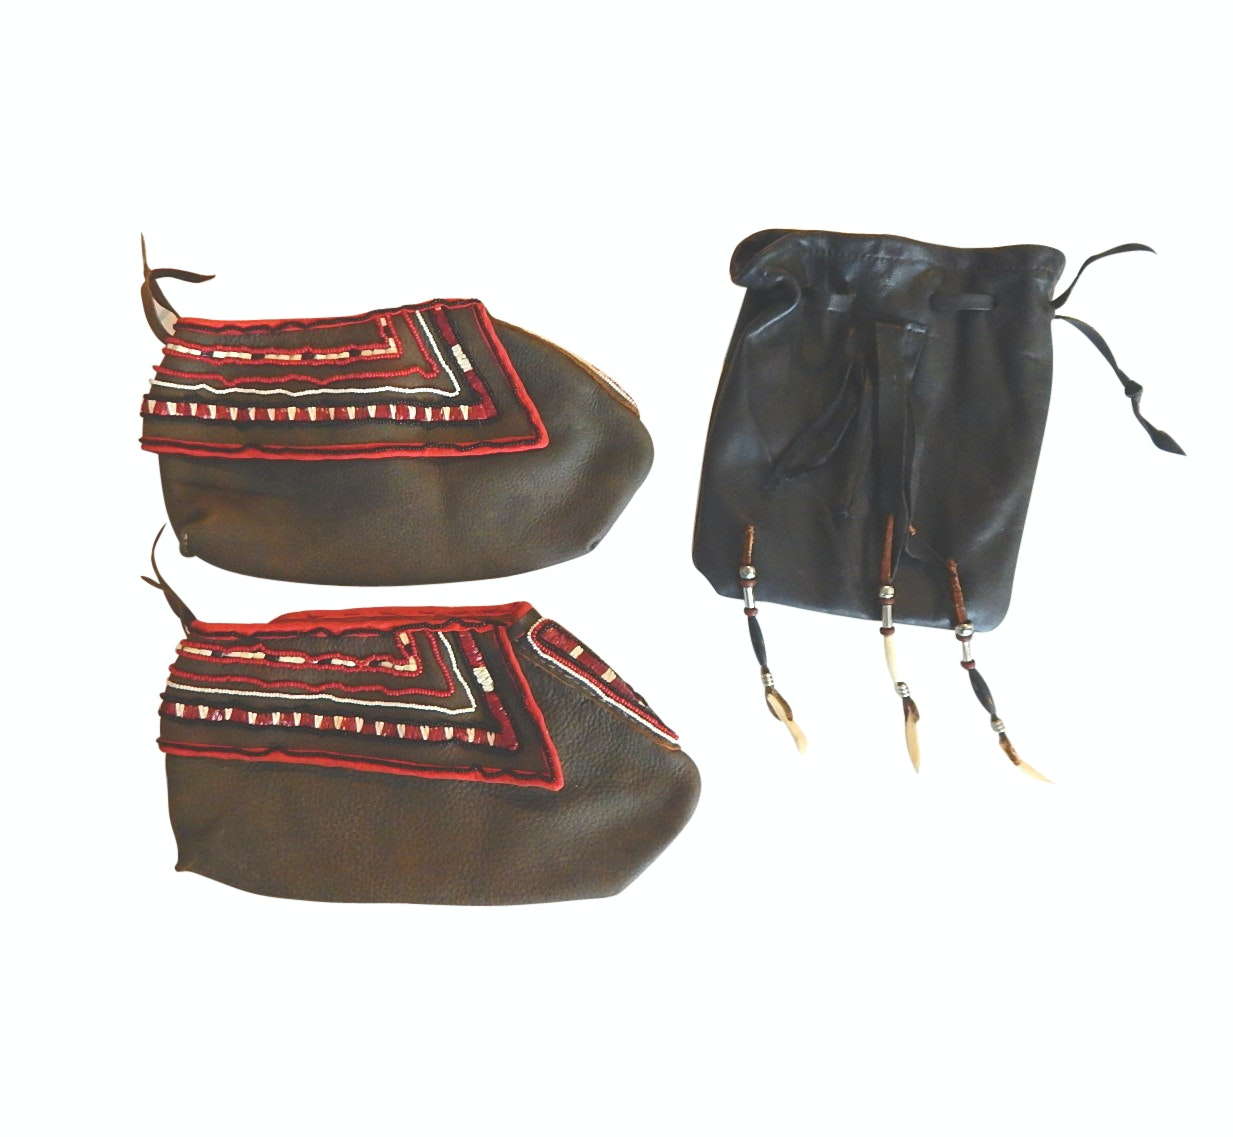 Plains Style Leather Shoes with Beading and Leather and Black Leather Purse